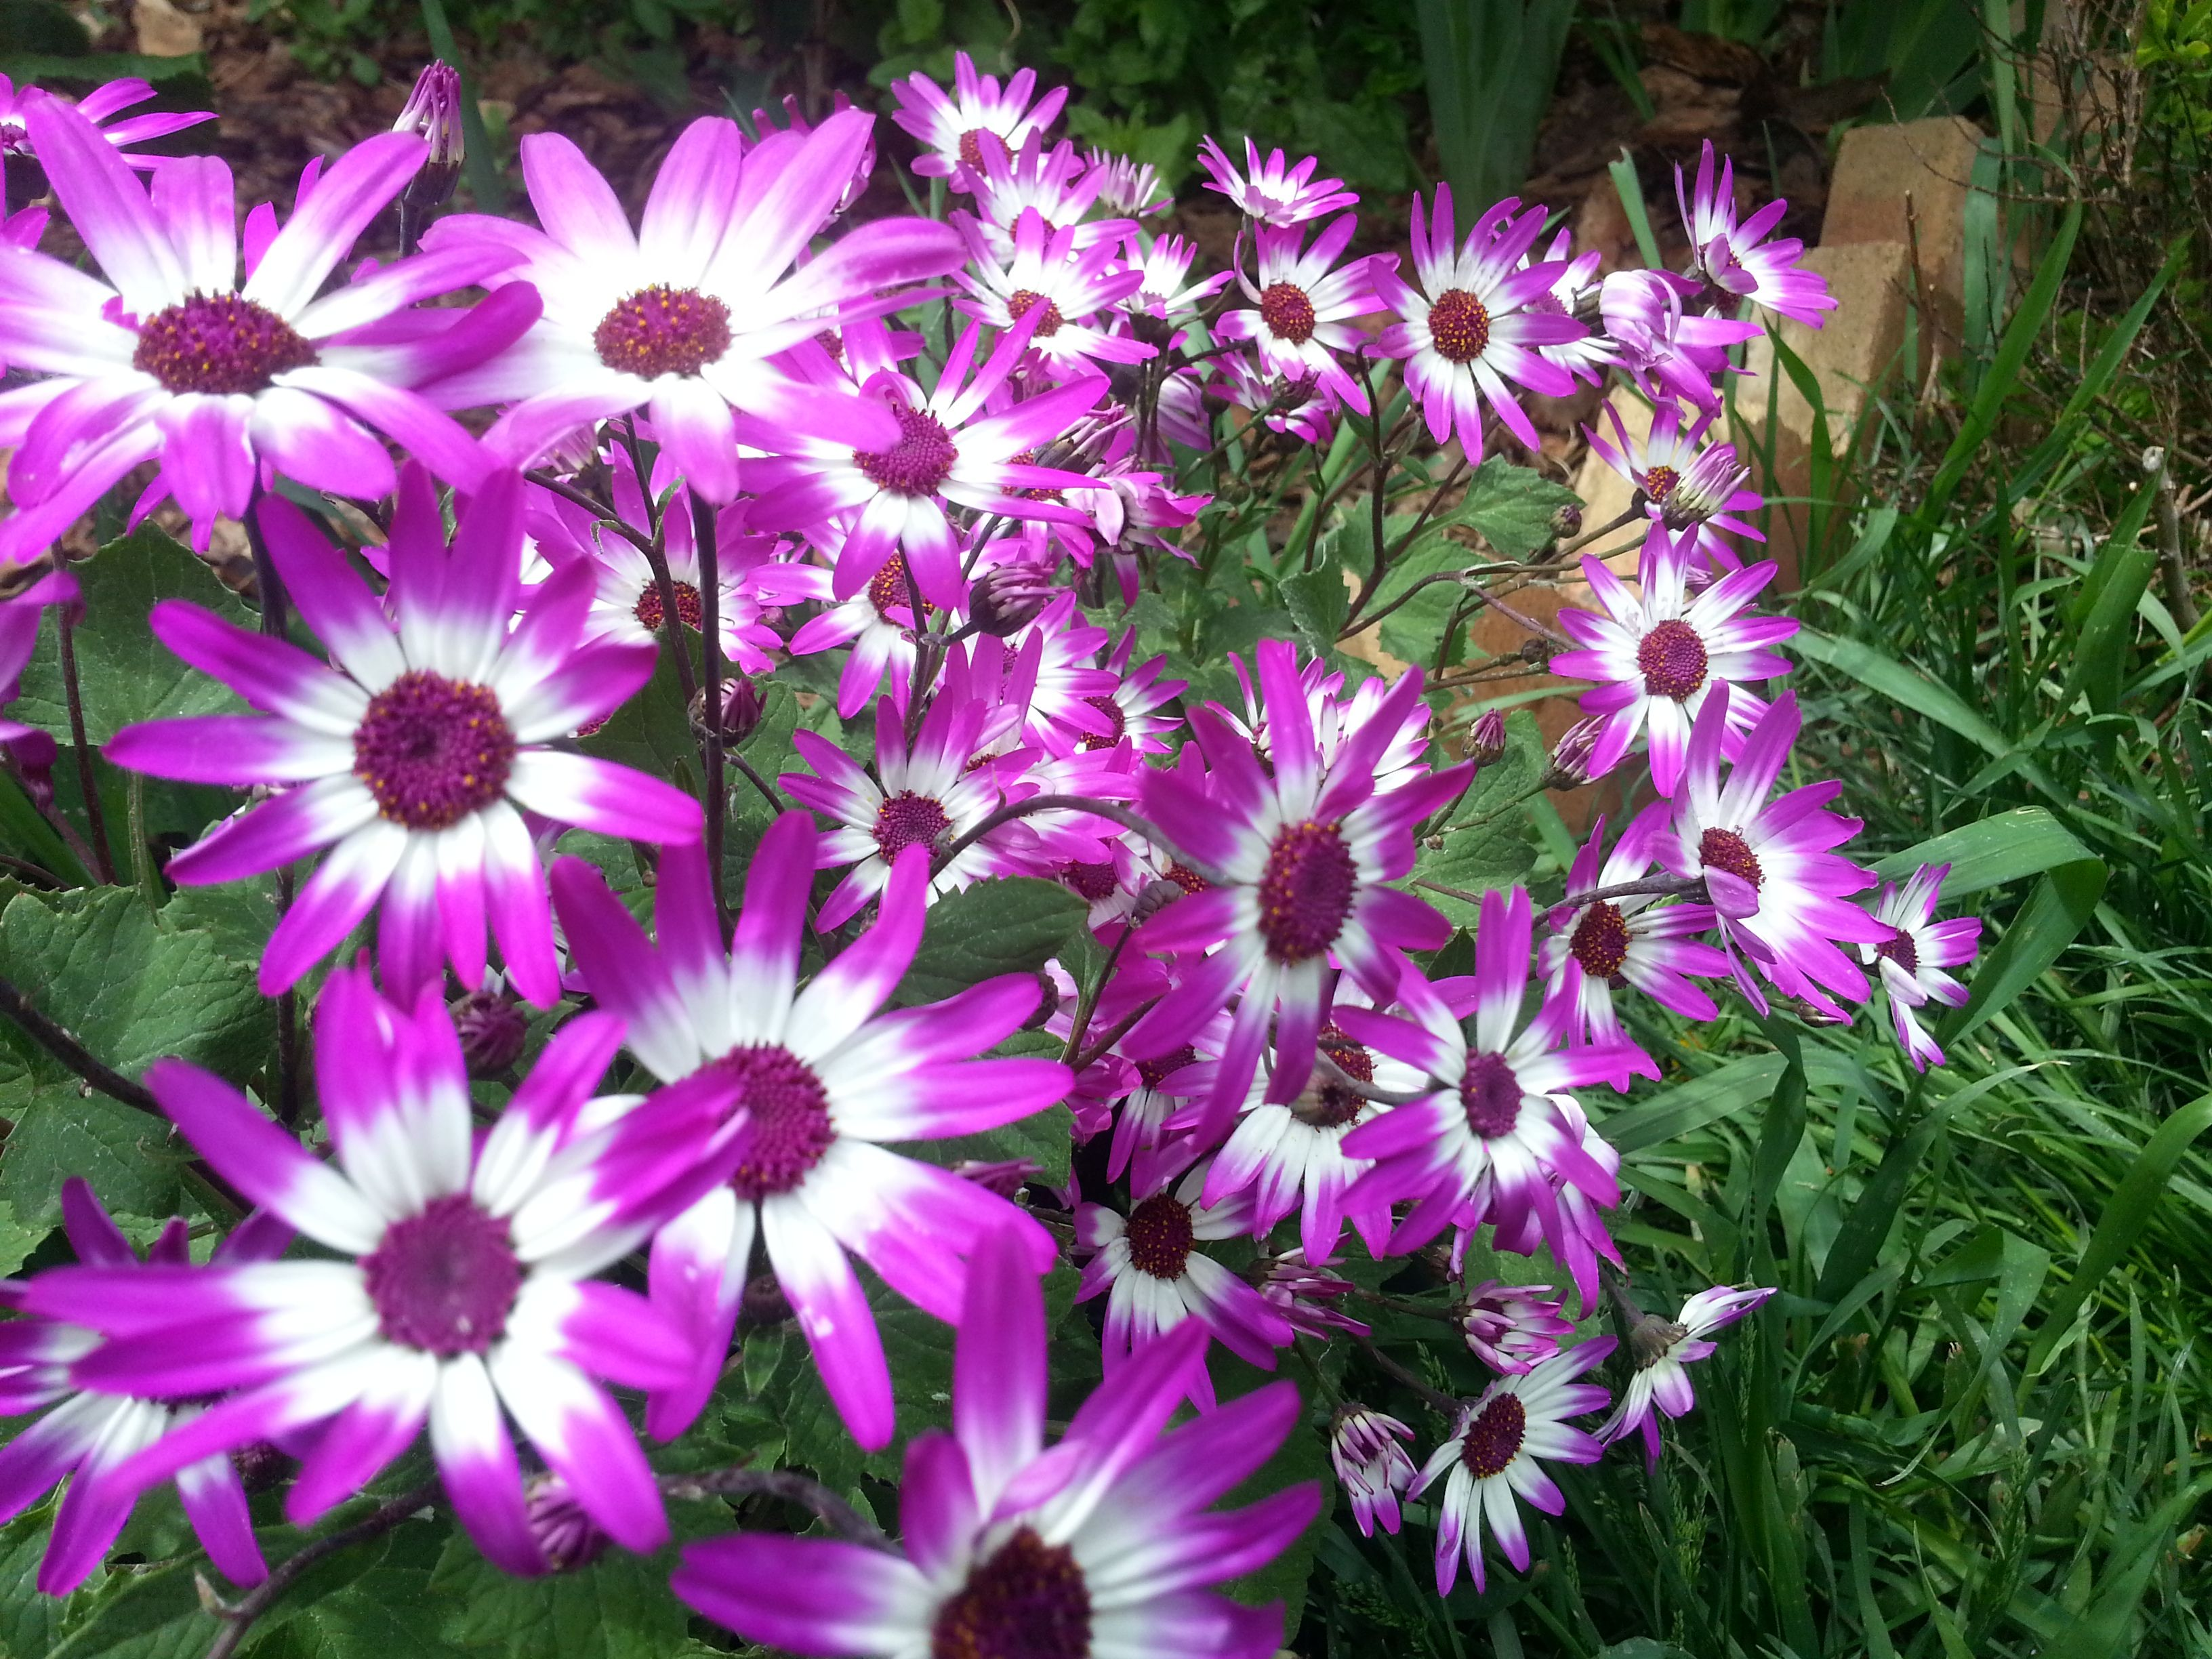 zenetti flowers that bloom inside or out at 35 degrees and twice a